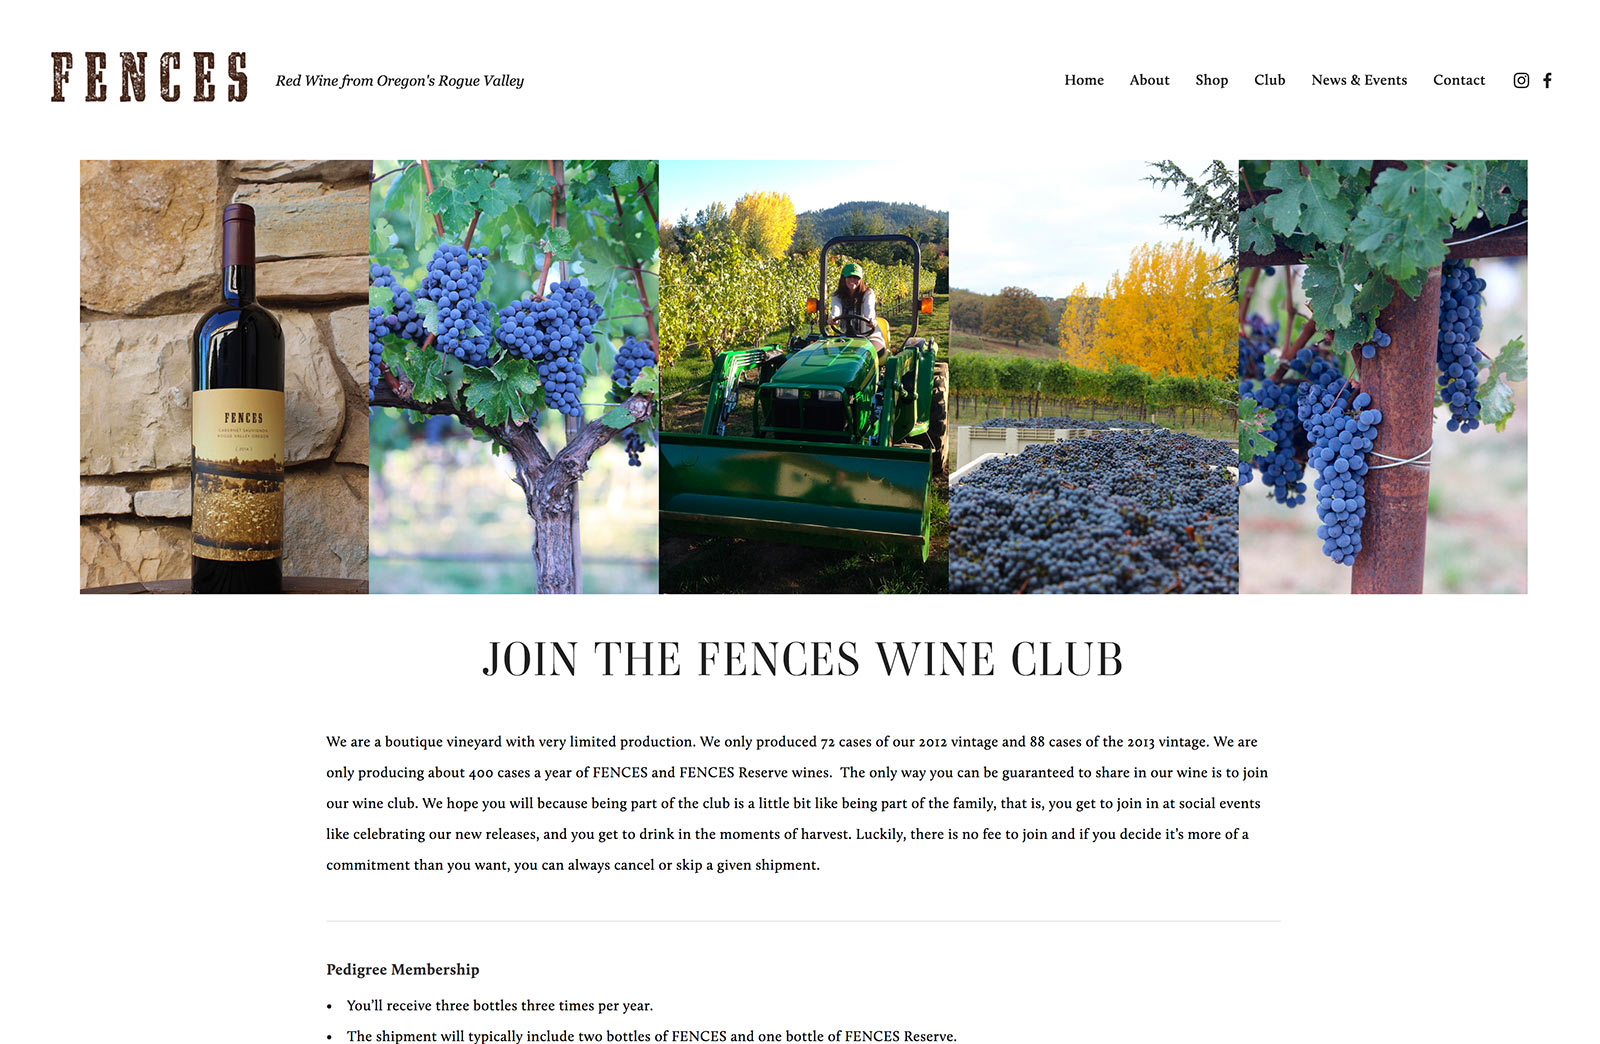 Southern Oregon Winery Website Development